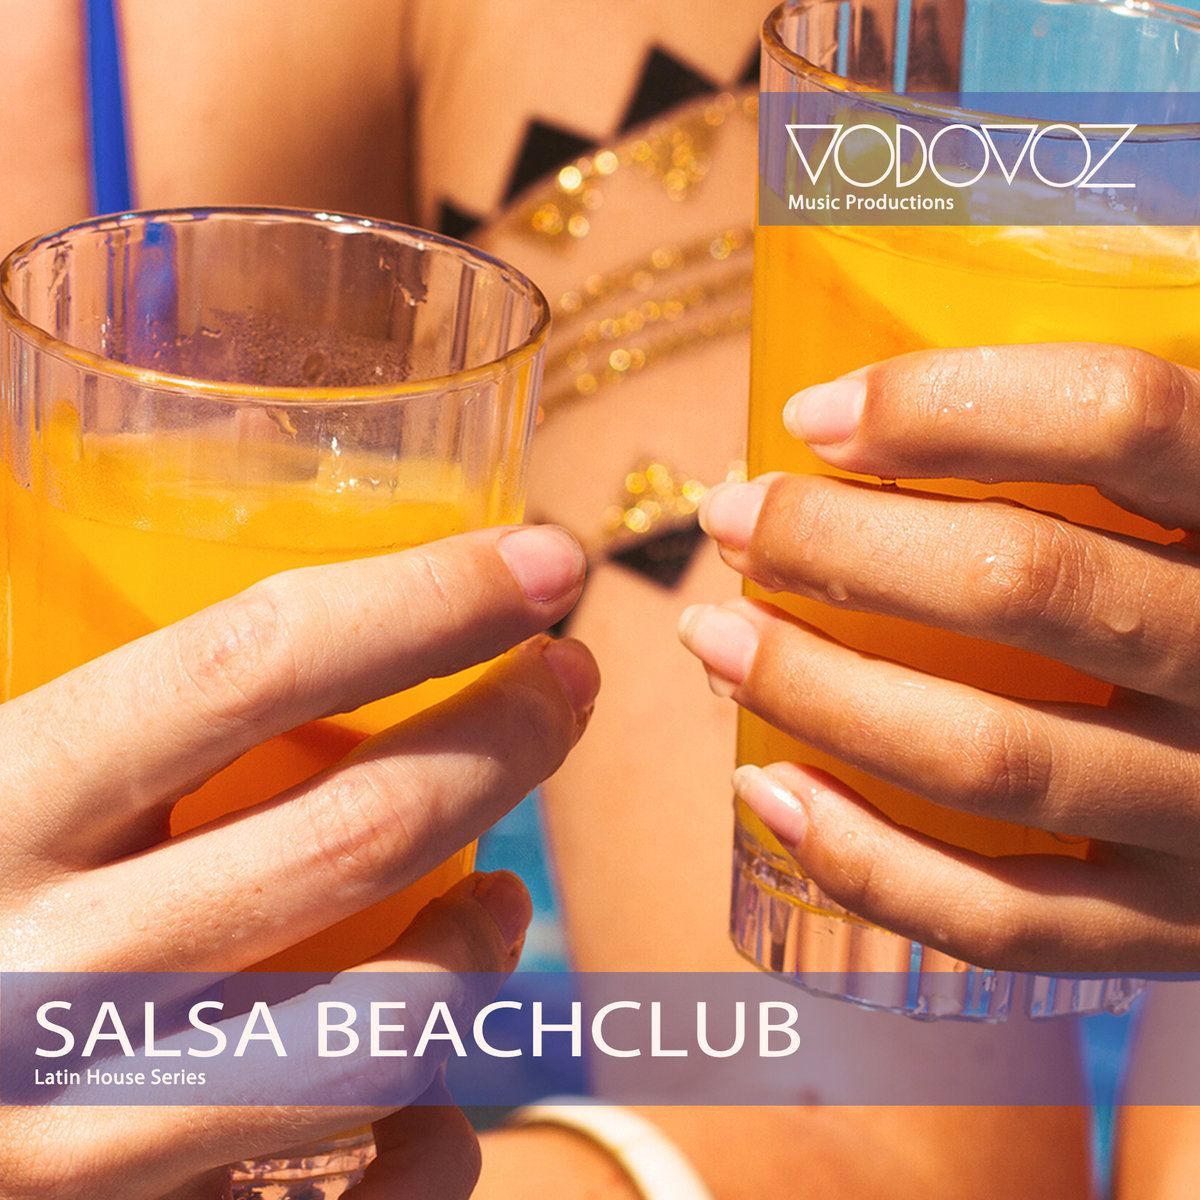 Salsa beachclub latin house commercial web licence vodovoz by vodovoz music productions hexwebz Choice Image